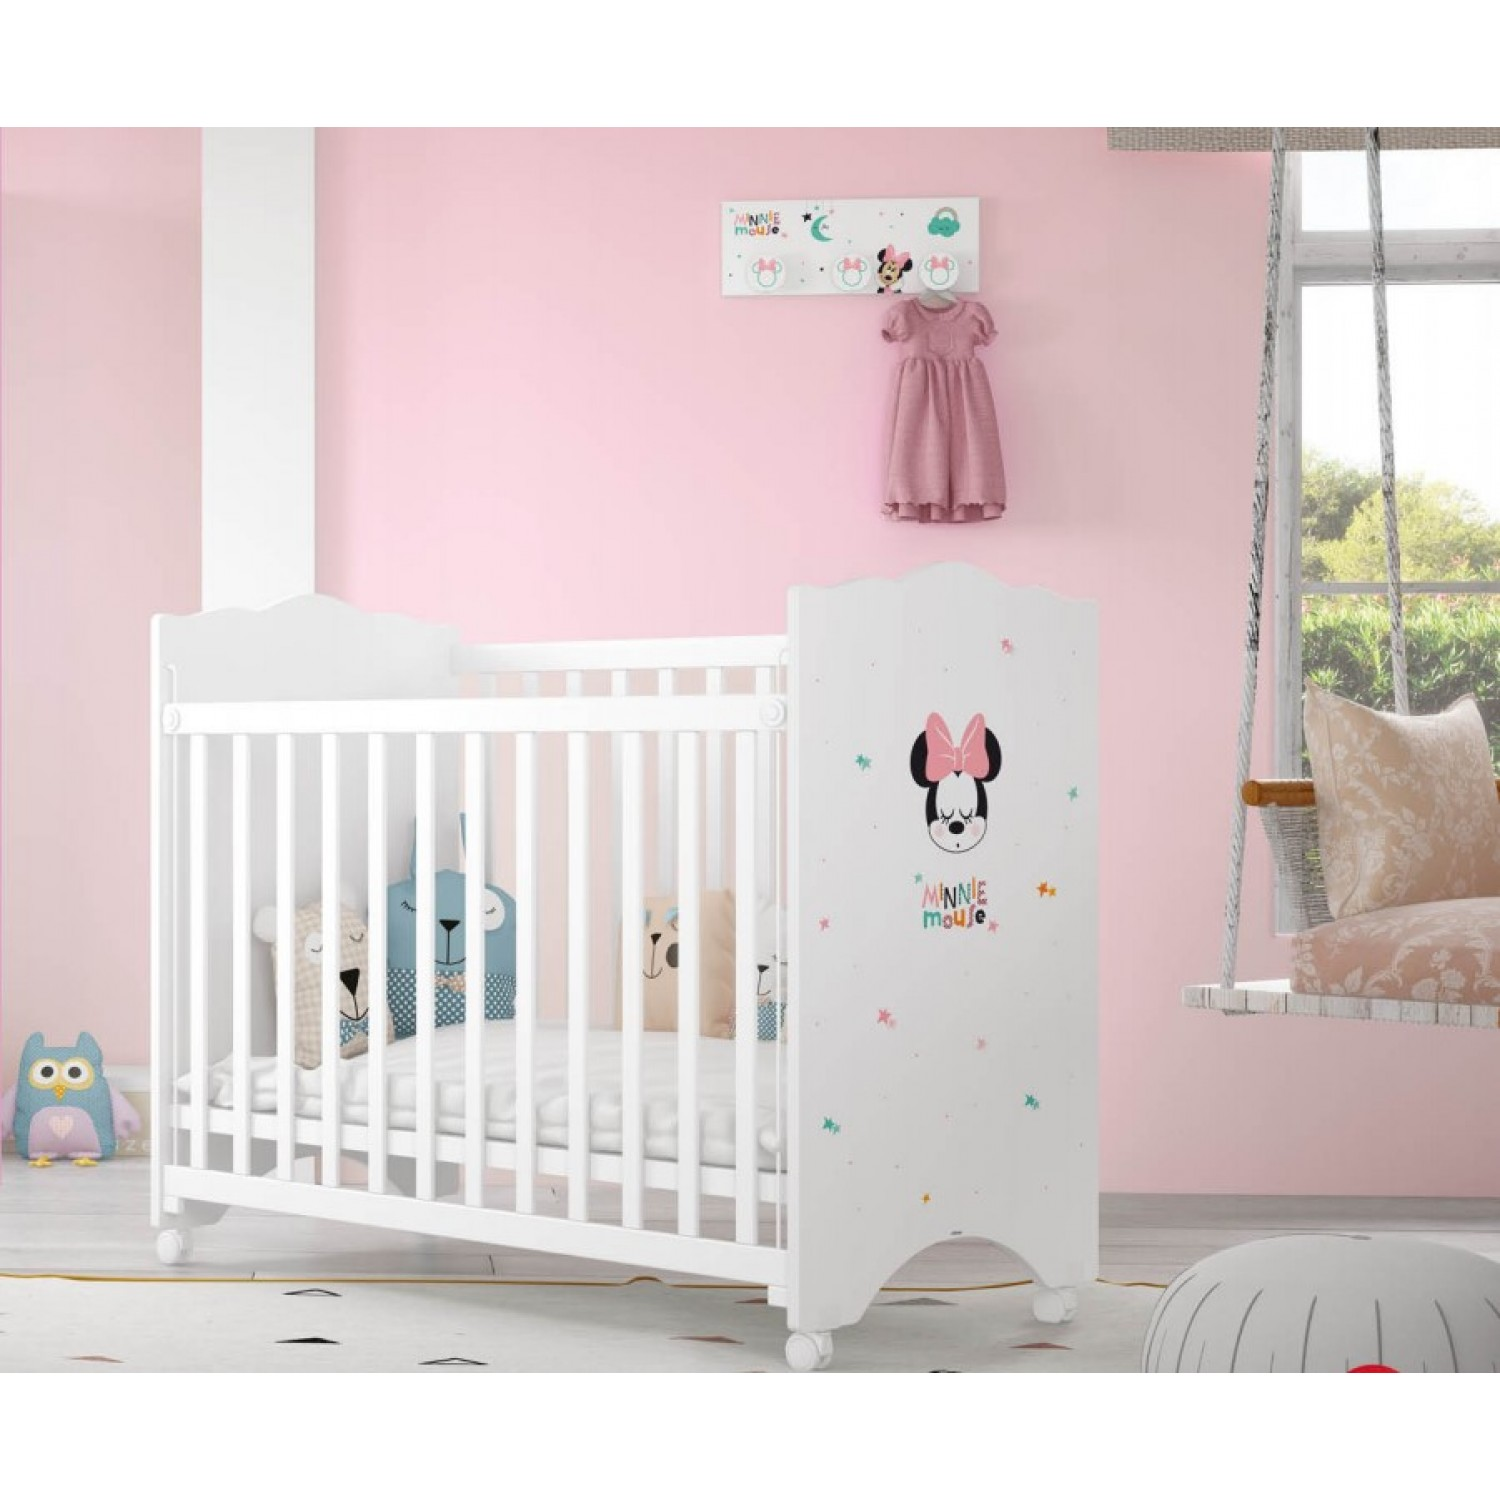 d0b07c1d897 ... Βρεφικό Κρεβάτι-Κούνια Baby Minnie Mouse 120Μx65,5Πx120Υ KR-00232  ΠΑΙΔΙΚΟ ΔΩΜΑΤΙΟ